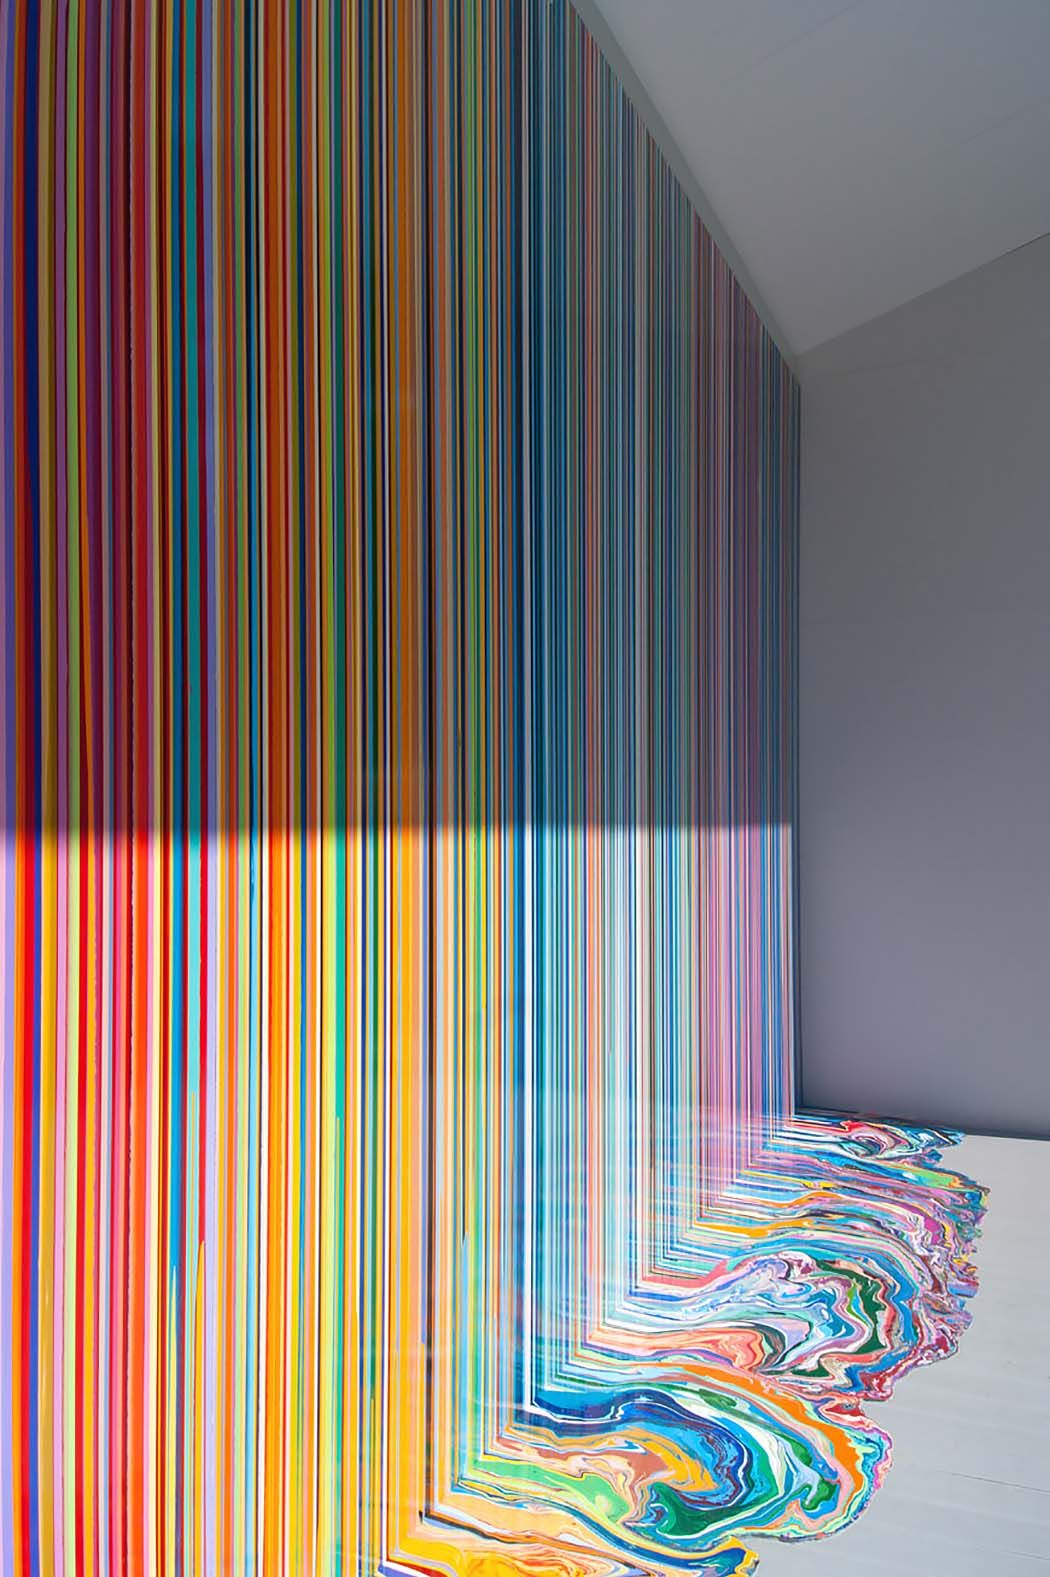 Ian Davenport's Poured Lines And Puddle Paintings